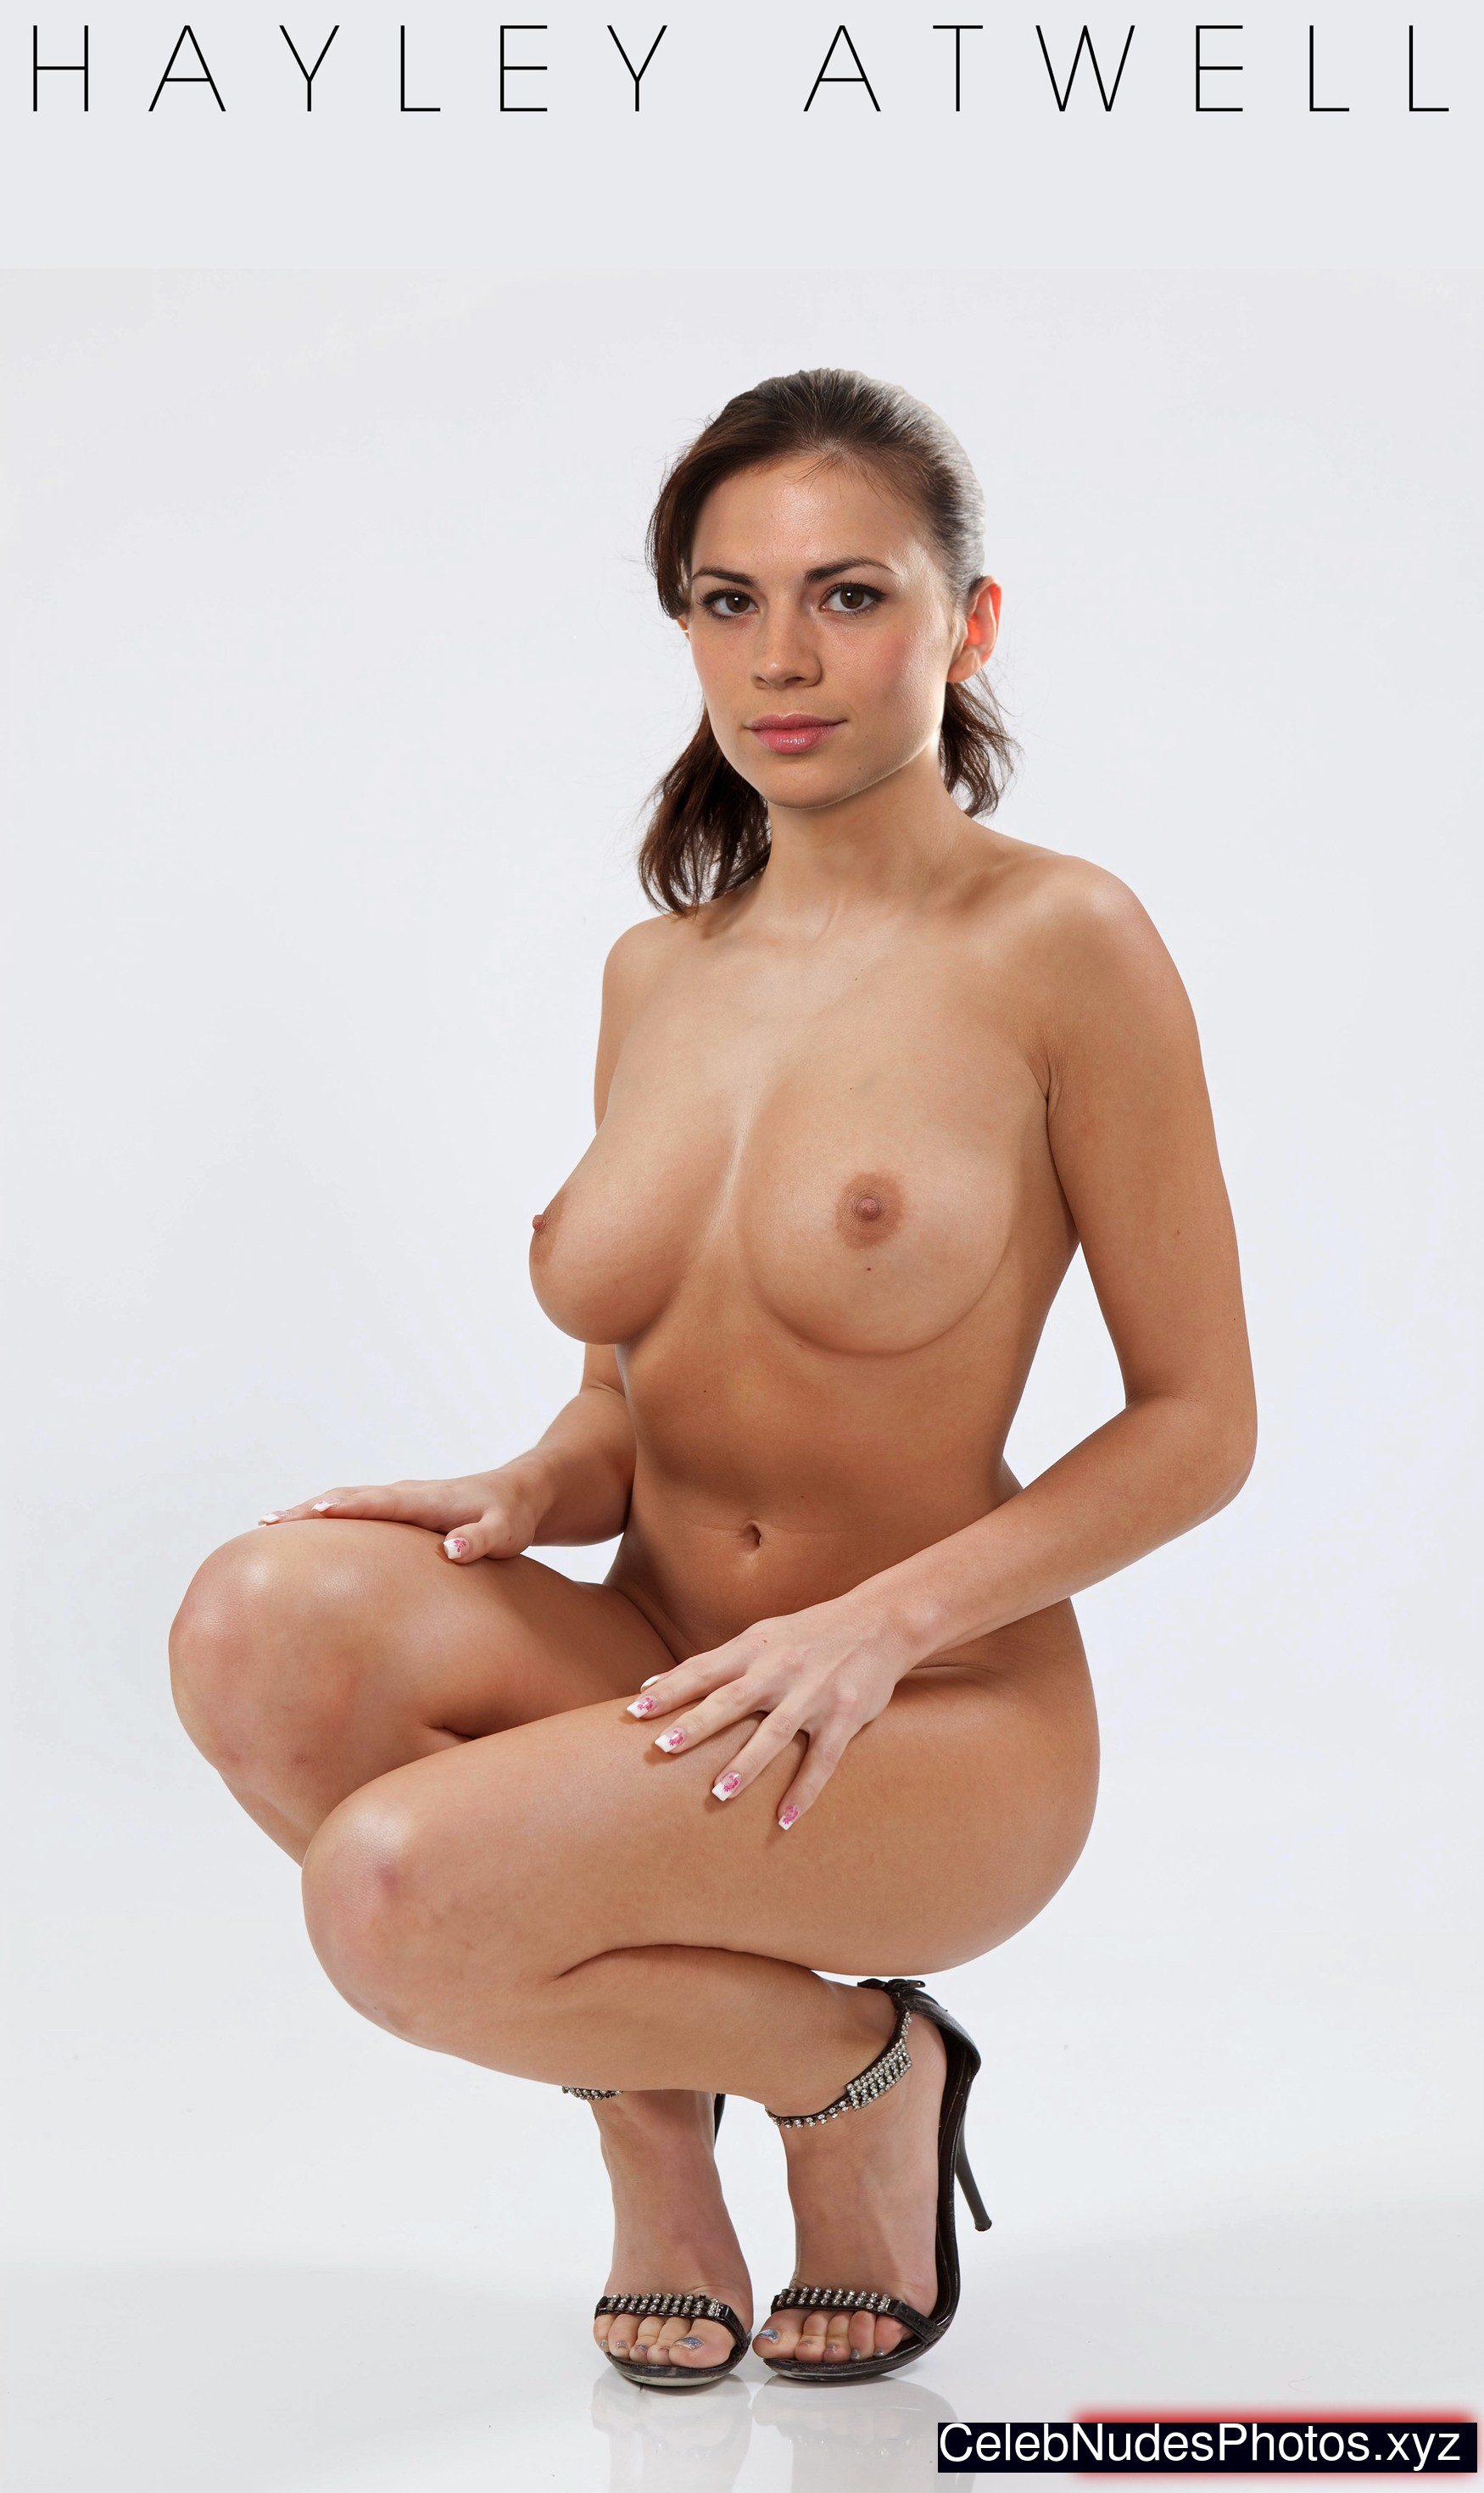 Hayley Atwell Celebrity Leaked Nude Photo sexy 5